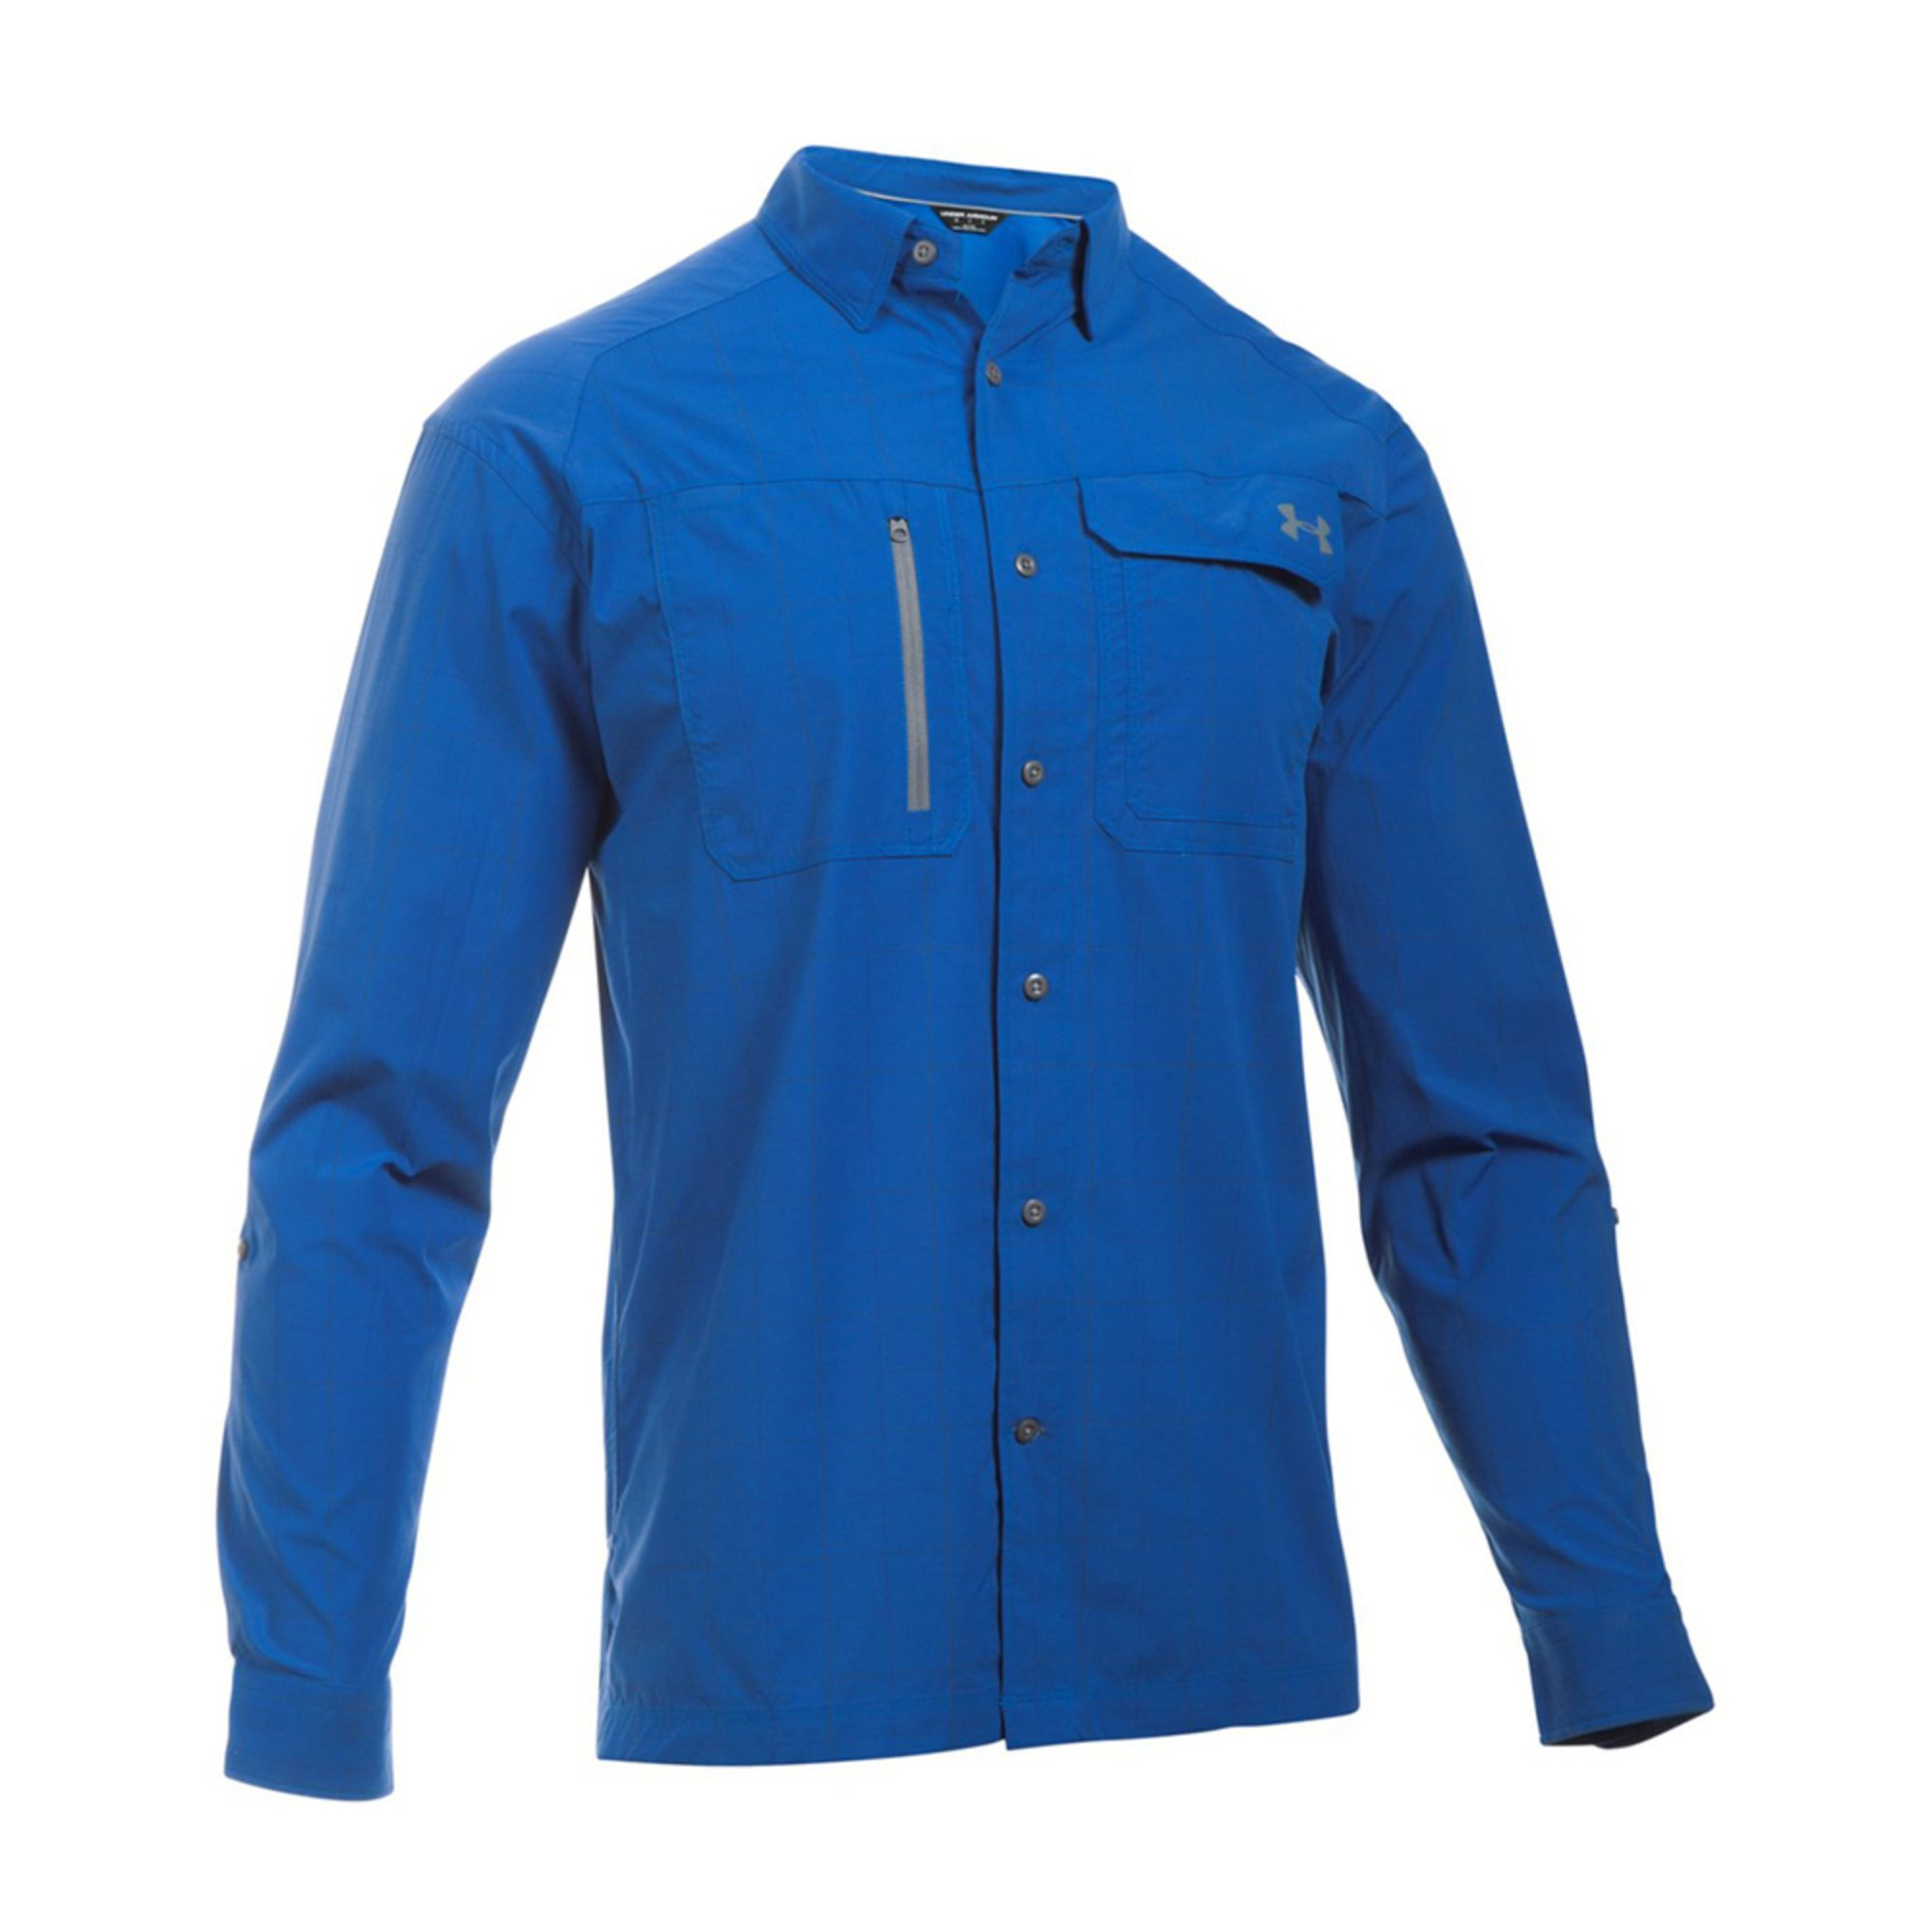 Under armour men 39 s fish hunter long sleeve button down for Under armour men s shirts clearance